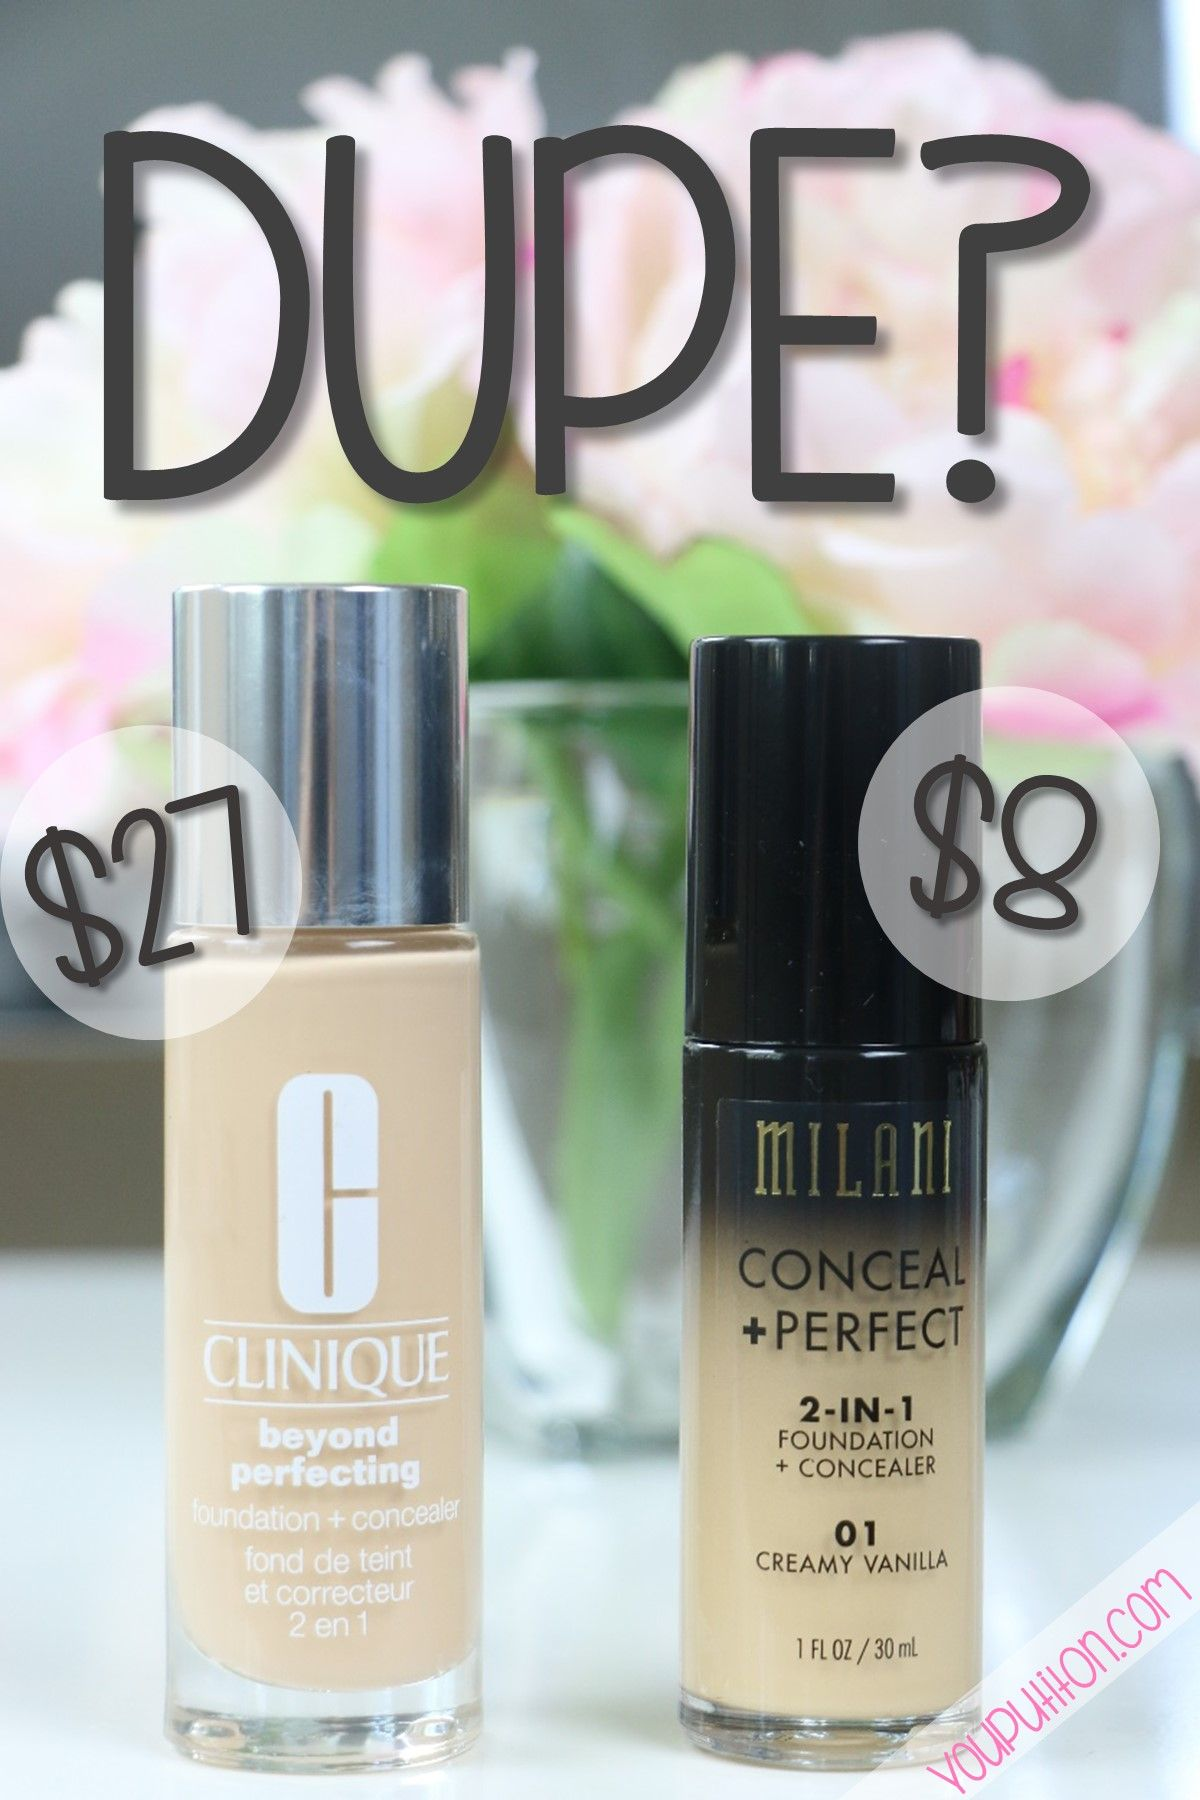 Dupe? Milani Conceal + Perfect vs  Clinique Beyond Perfecting